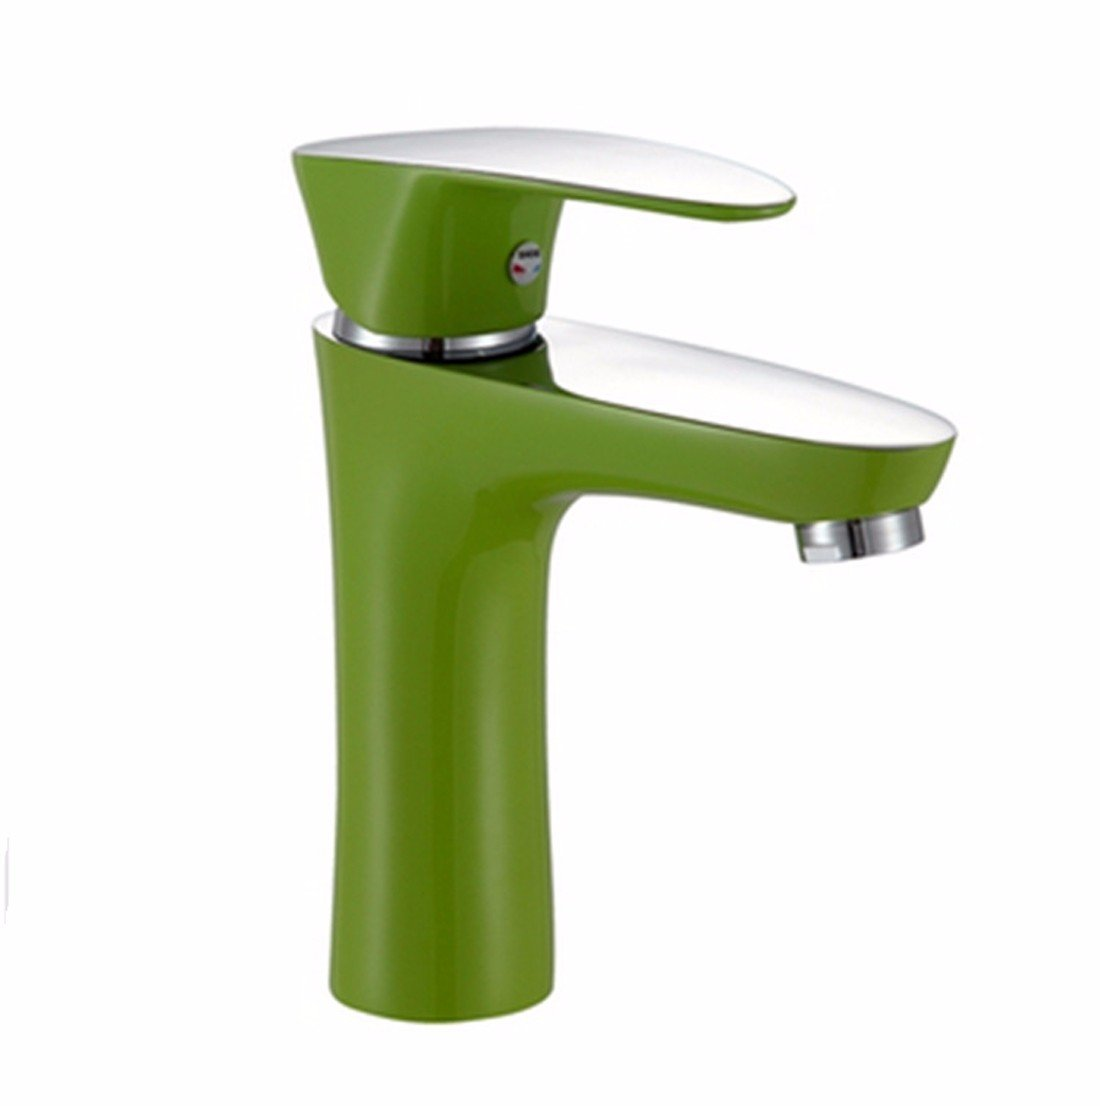 MDRW-Water wash basin faucet, faucet color